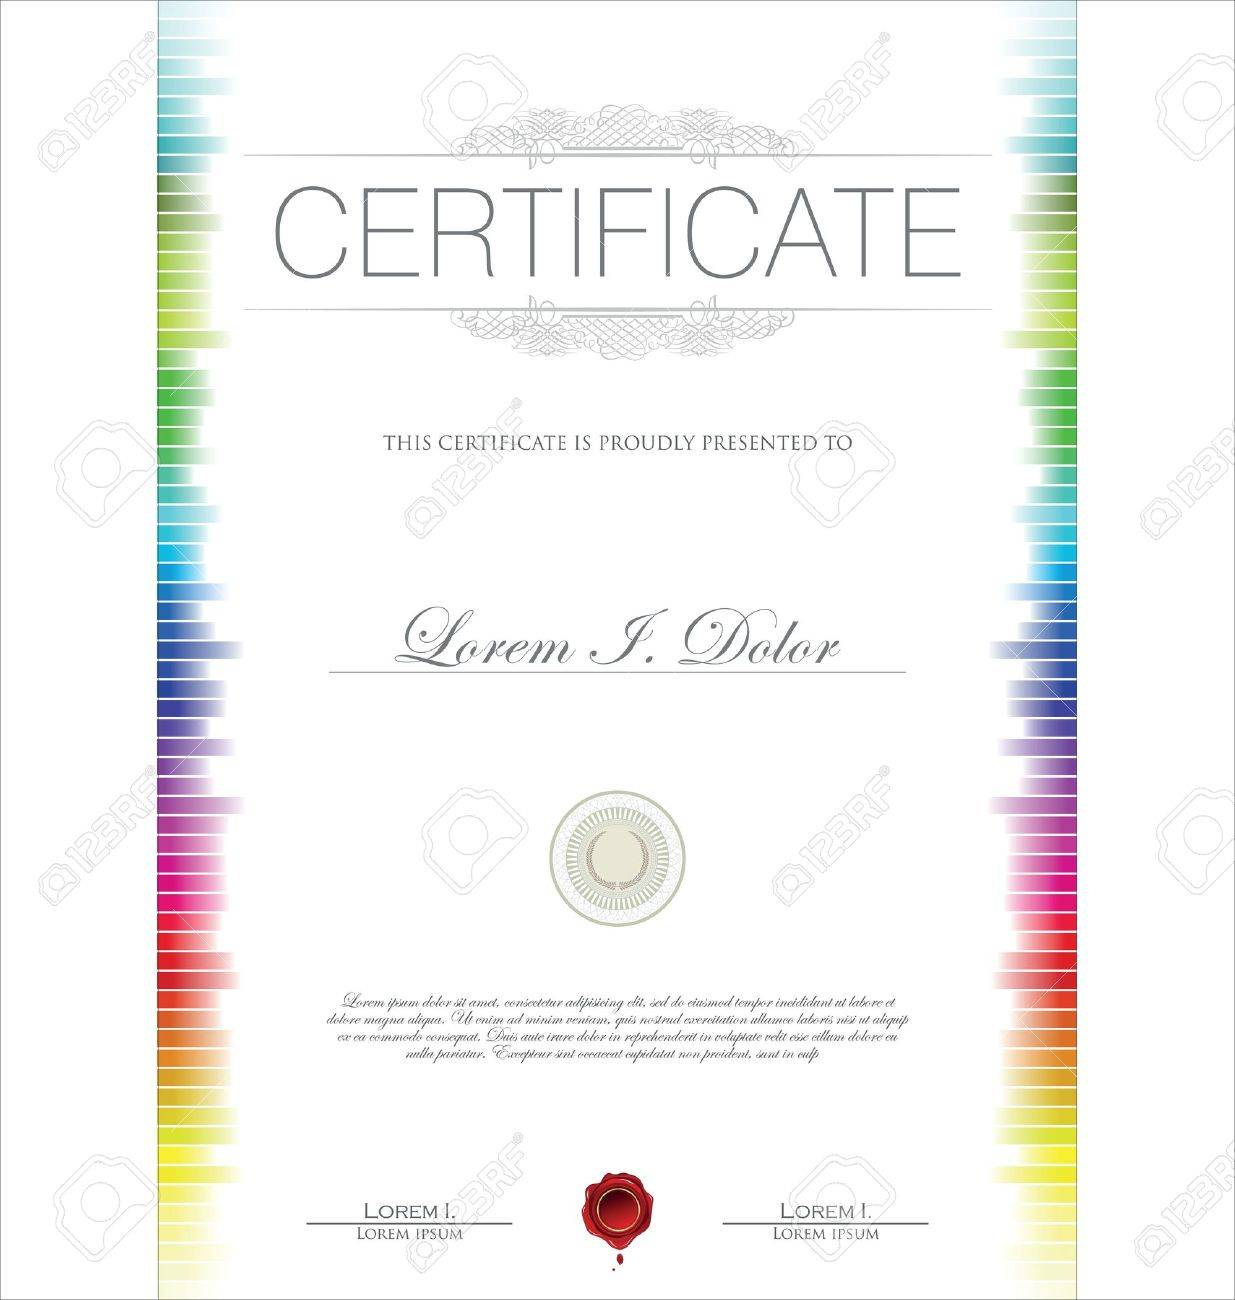 Colorful Certificate Template Royalty Free Cliparts, Vectors, And ...